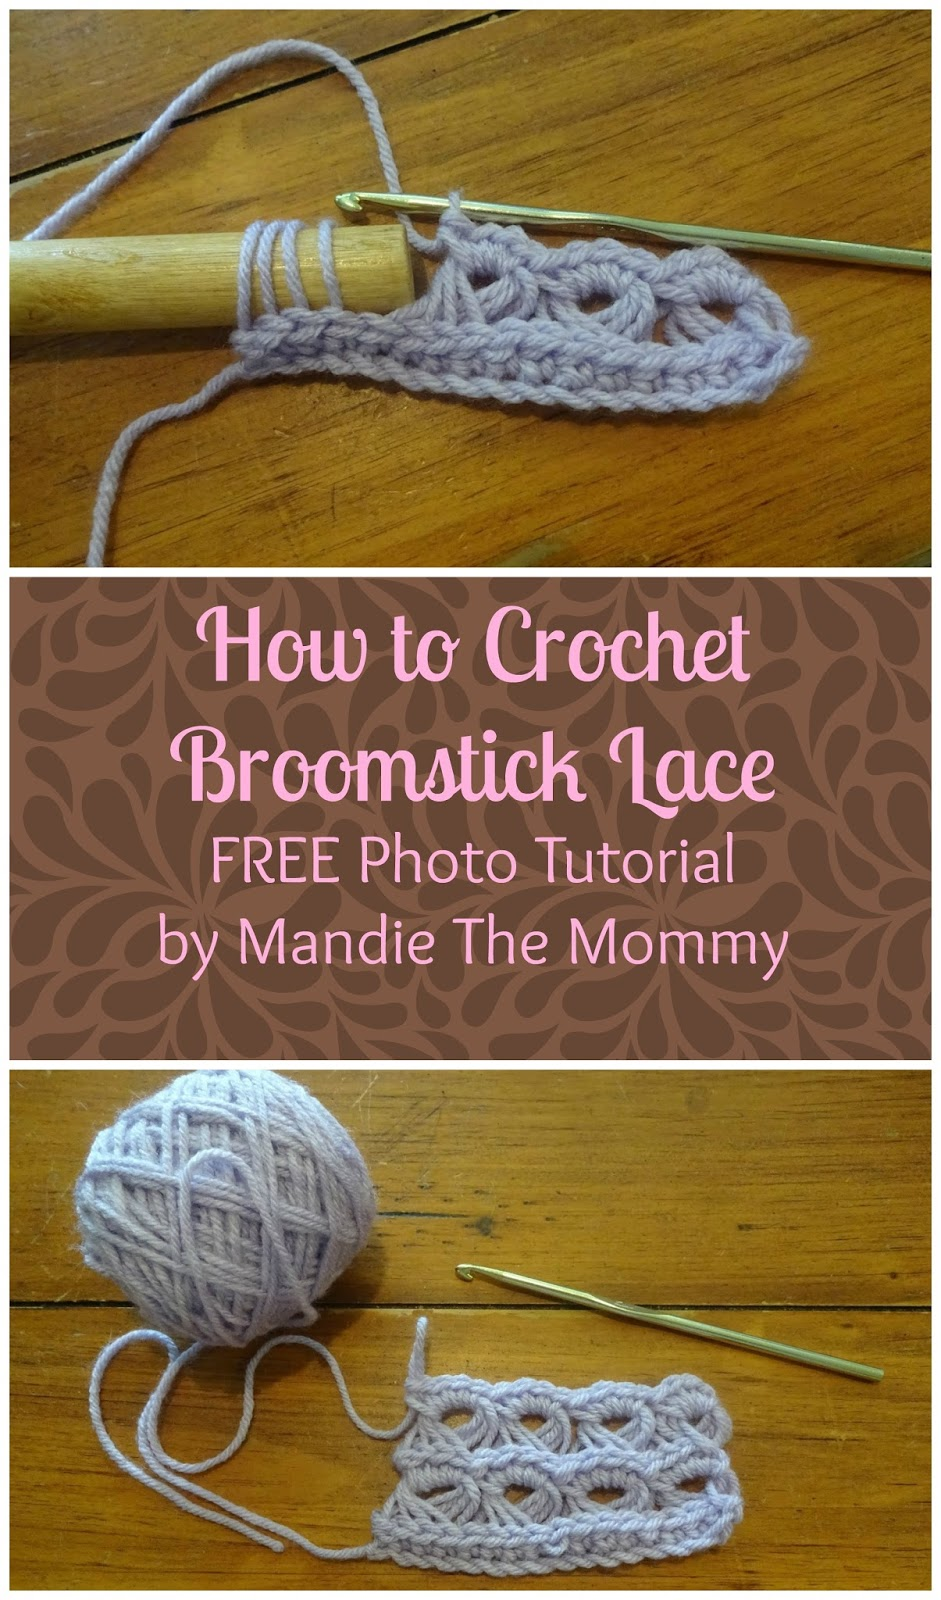 Broomstick Lace Photo Tutorial